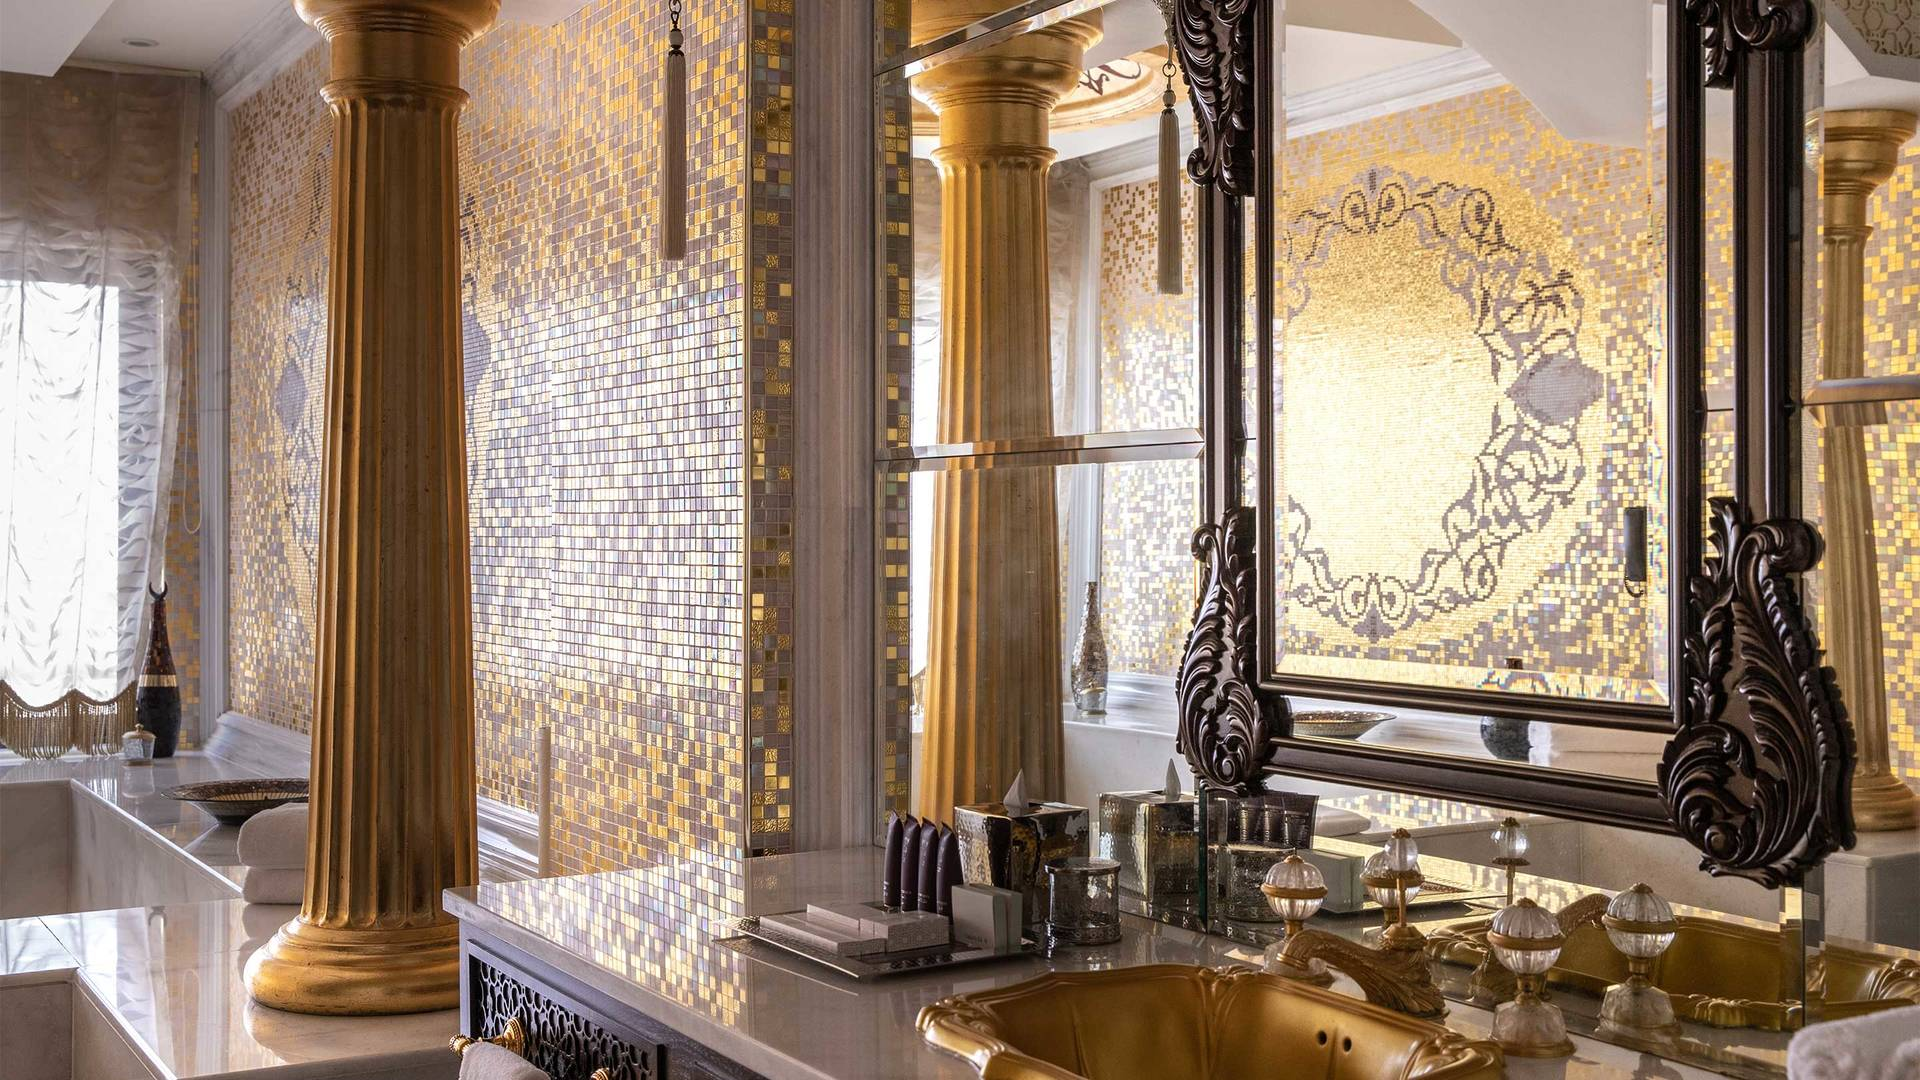 16-9_Jumeirah-Zabeel-Saray---Grand-Imperial-Suite---Bathroom-Area-Detailed